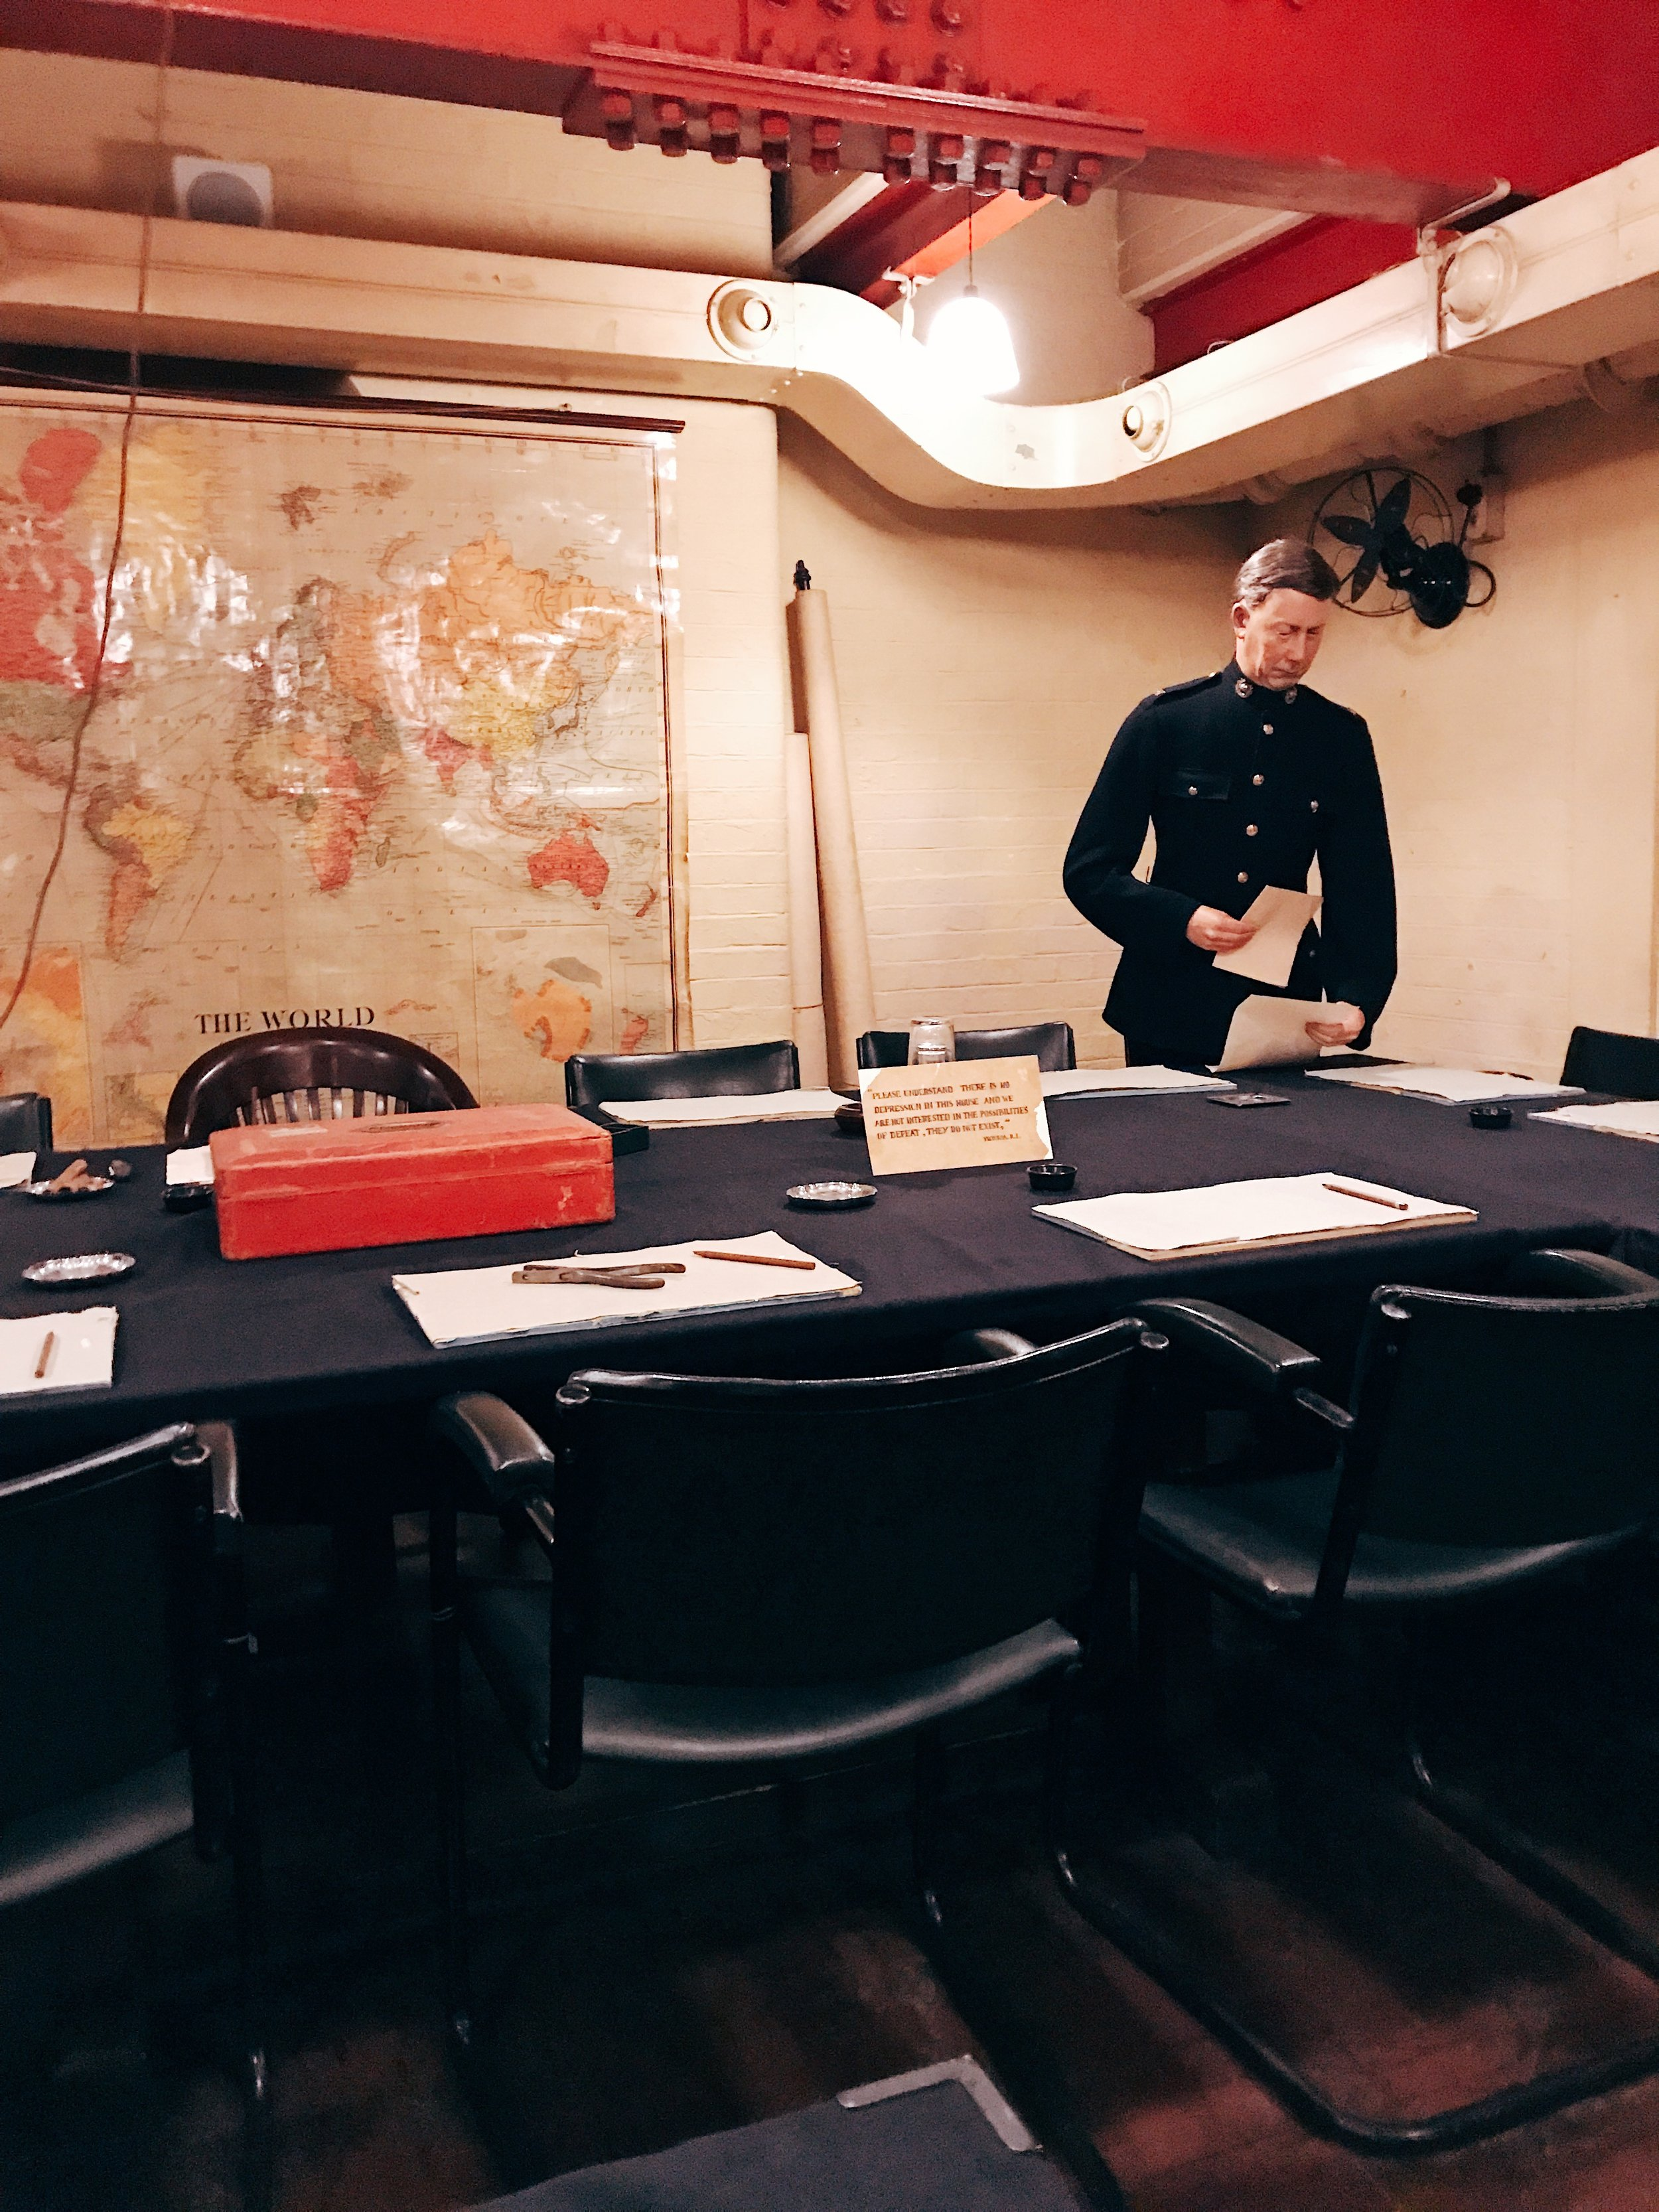 Image: Weekend in London - Churchill War Rooms